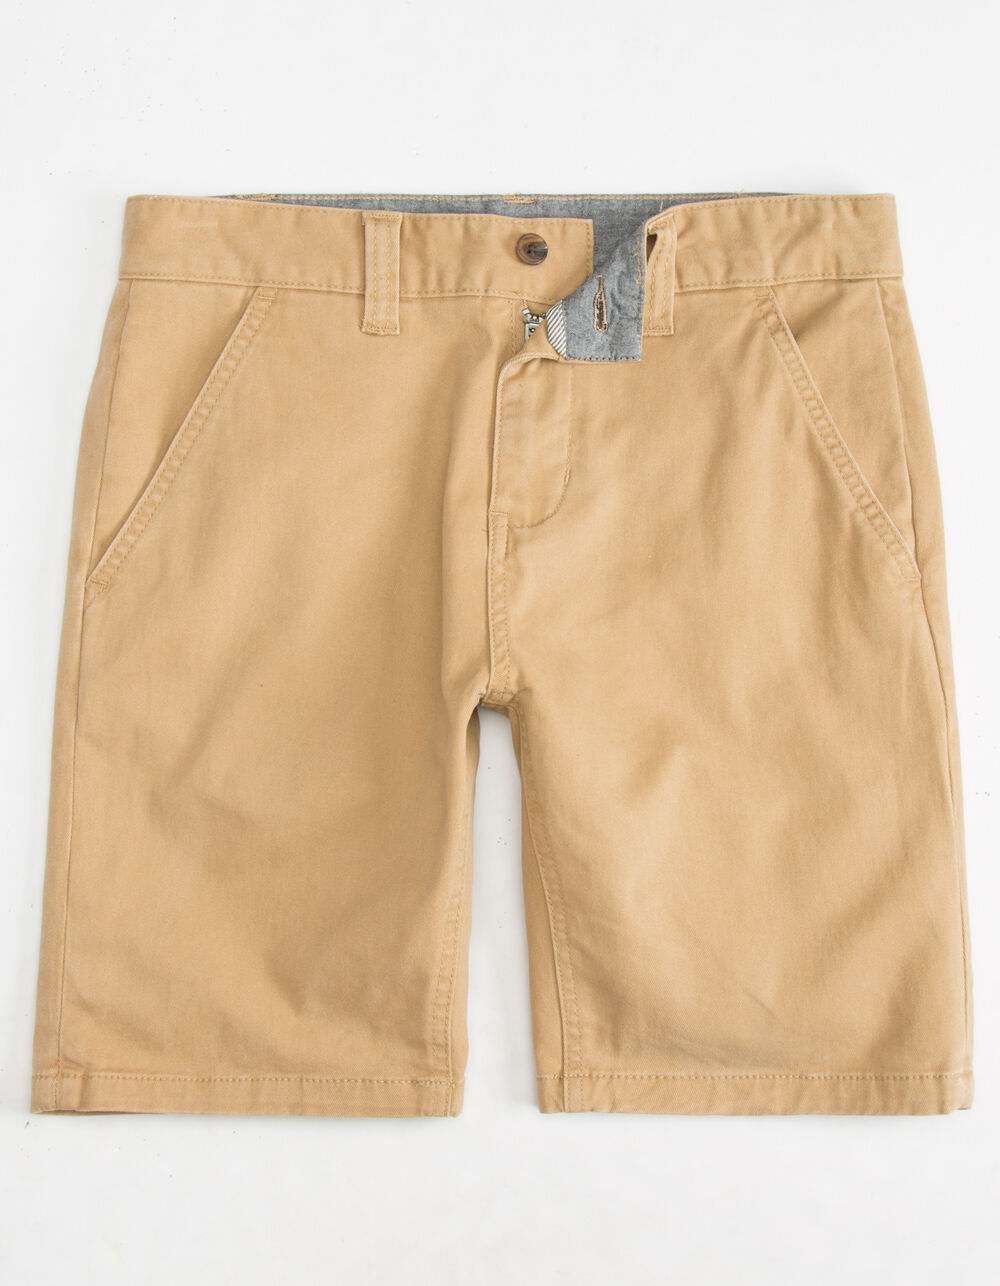 CHARLES AND A HALF Lincoln Stretch Dark Khaki Shorts